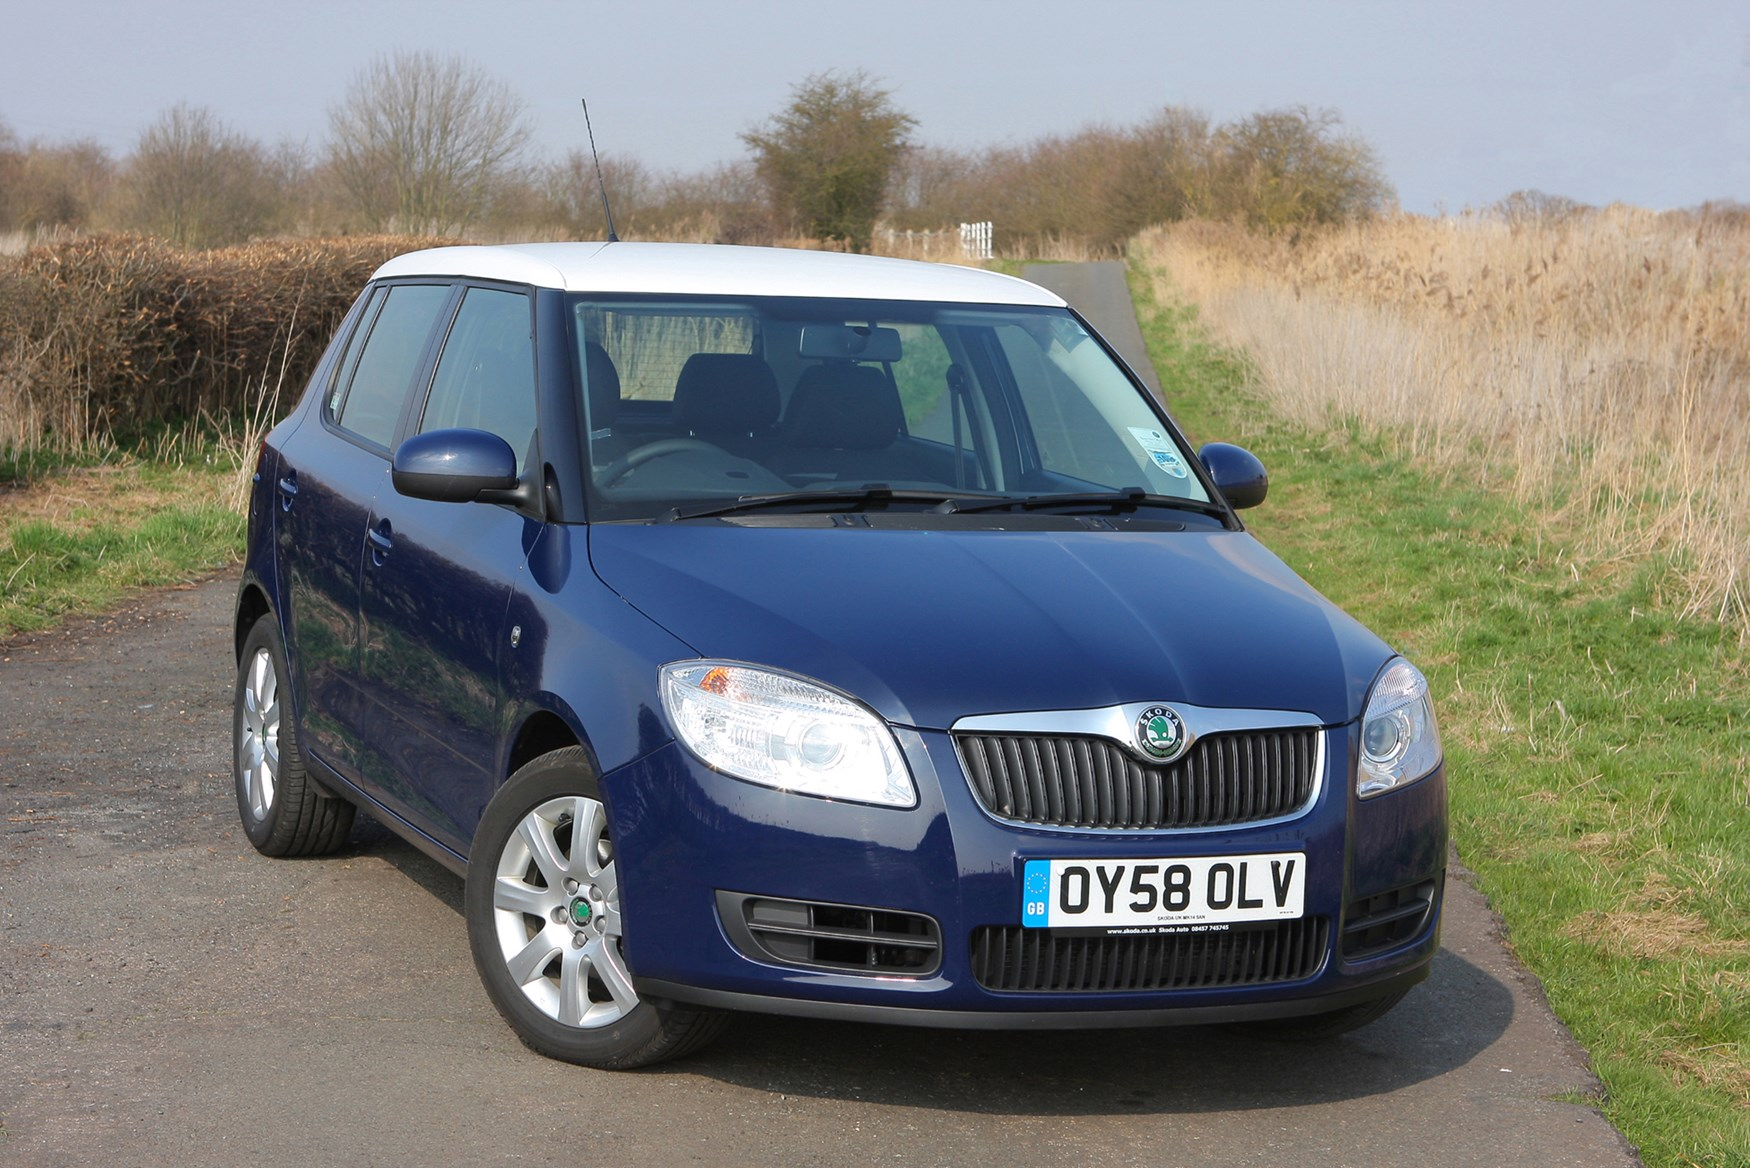 skoda fabia hatchback review 2007 2014 parkers. Black Bedroom Furniture Sets. Home Design Ideas